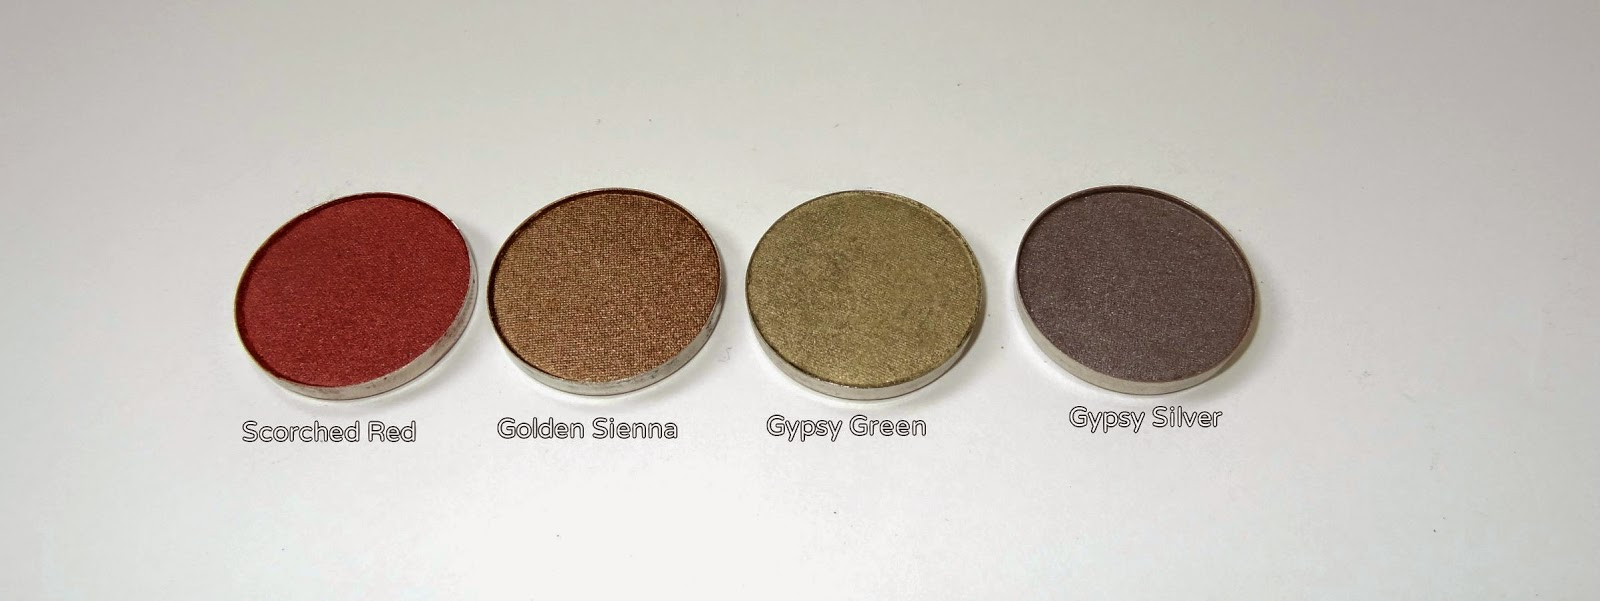 coastal scents hot pots haul scorched red,golden sienna,gypsy green,gypsy silver